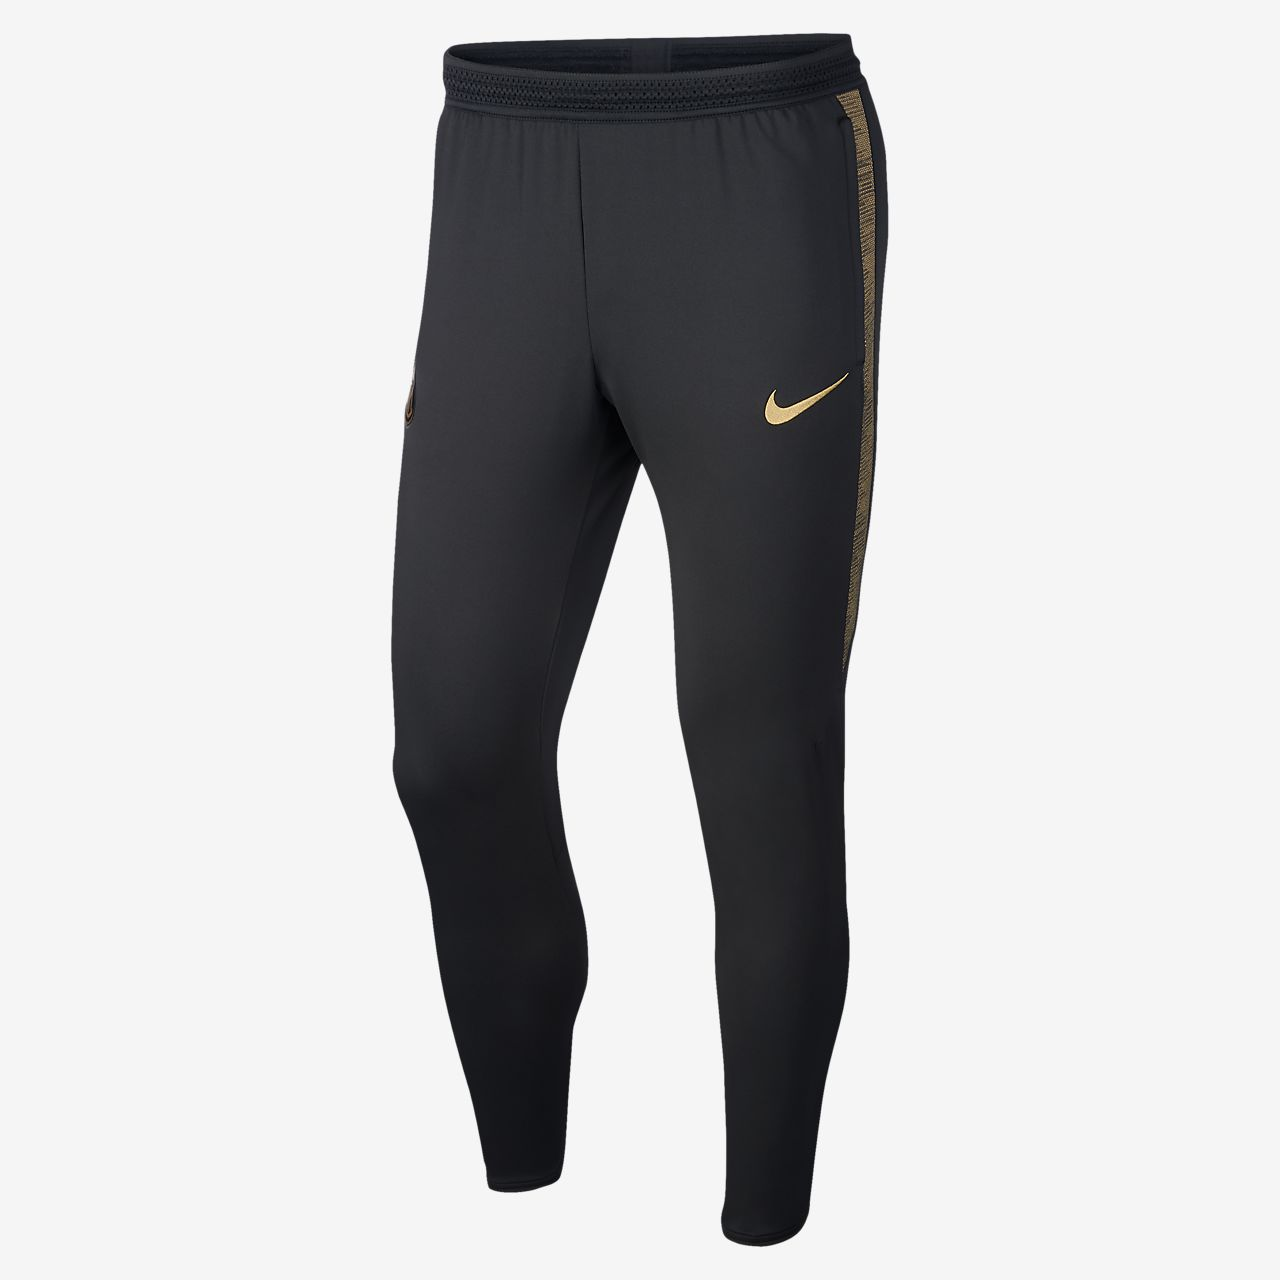 Nike Dri-FIT Inter Milan Strike Men's Football Pants